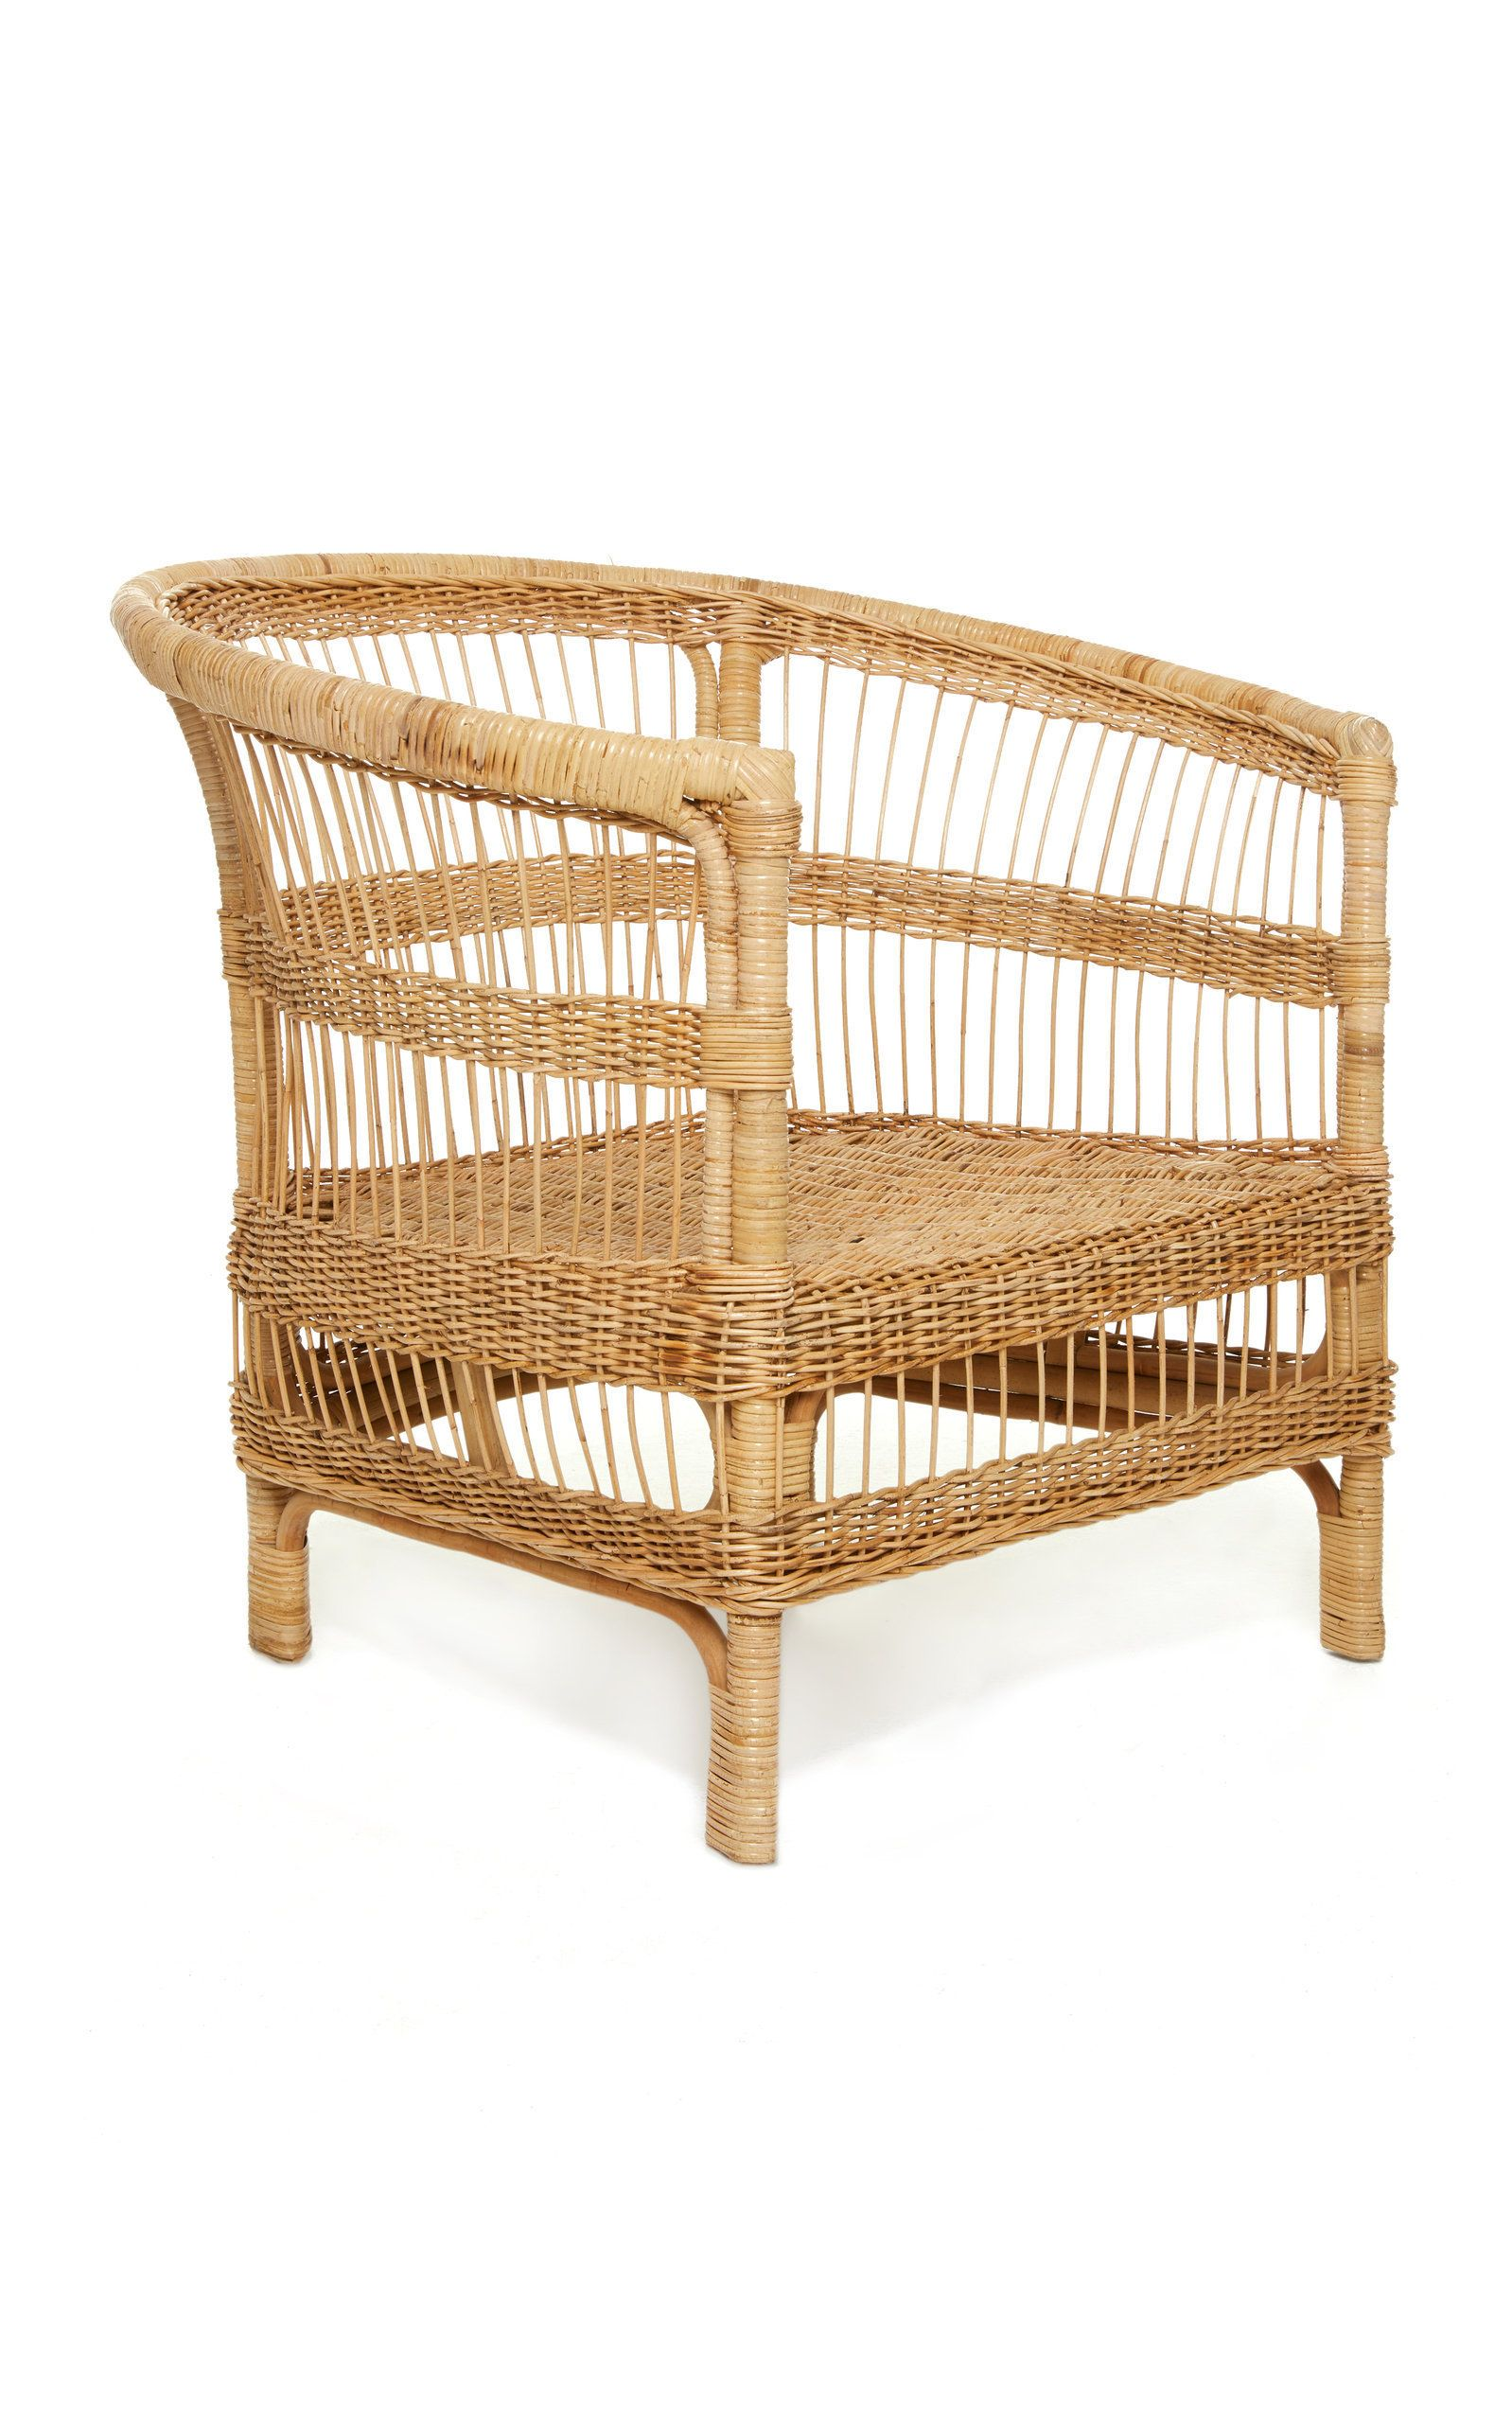 arjumand world rattan chair this charming handmade woven minsmere cane accent table small rustic round end room essentials storage white sofa with mirror side tables bedroom